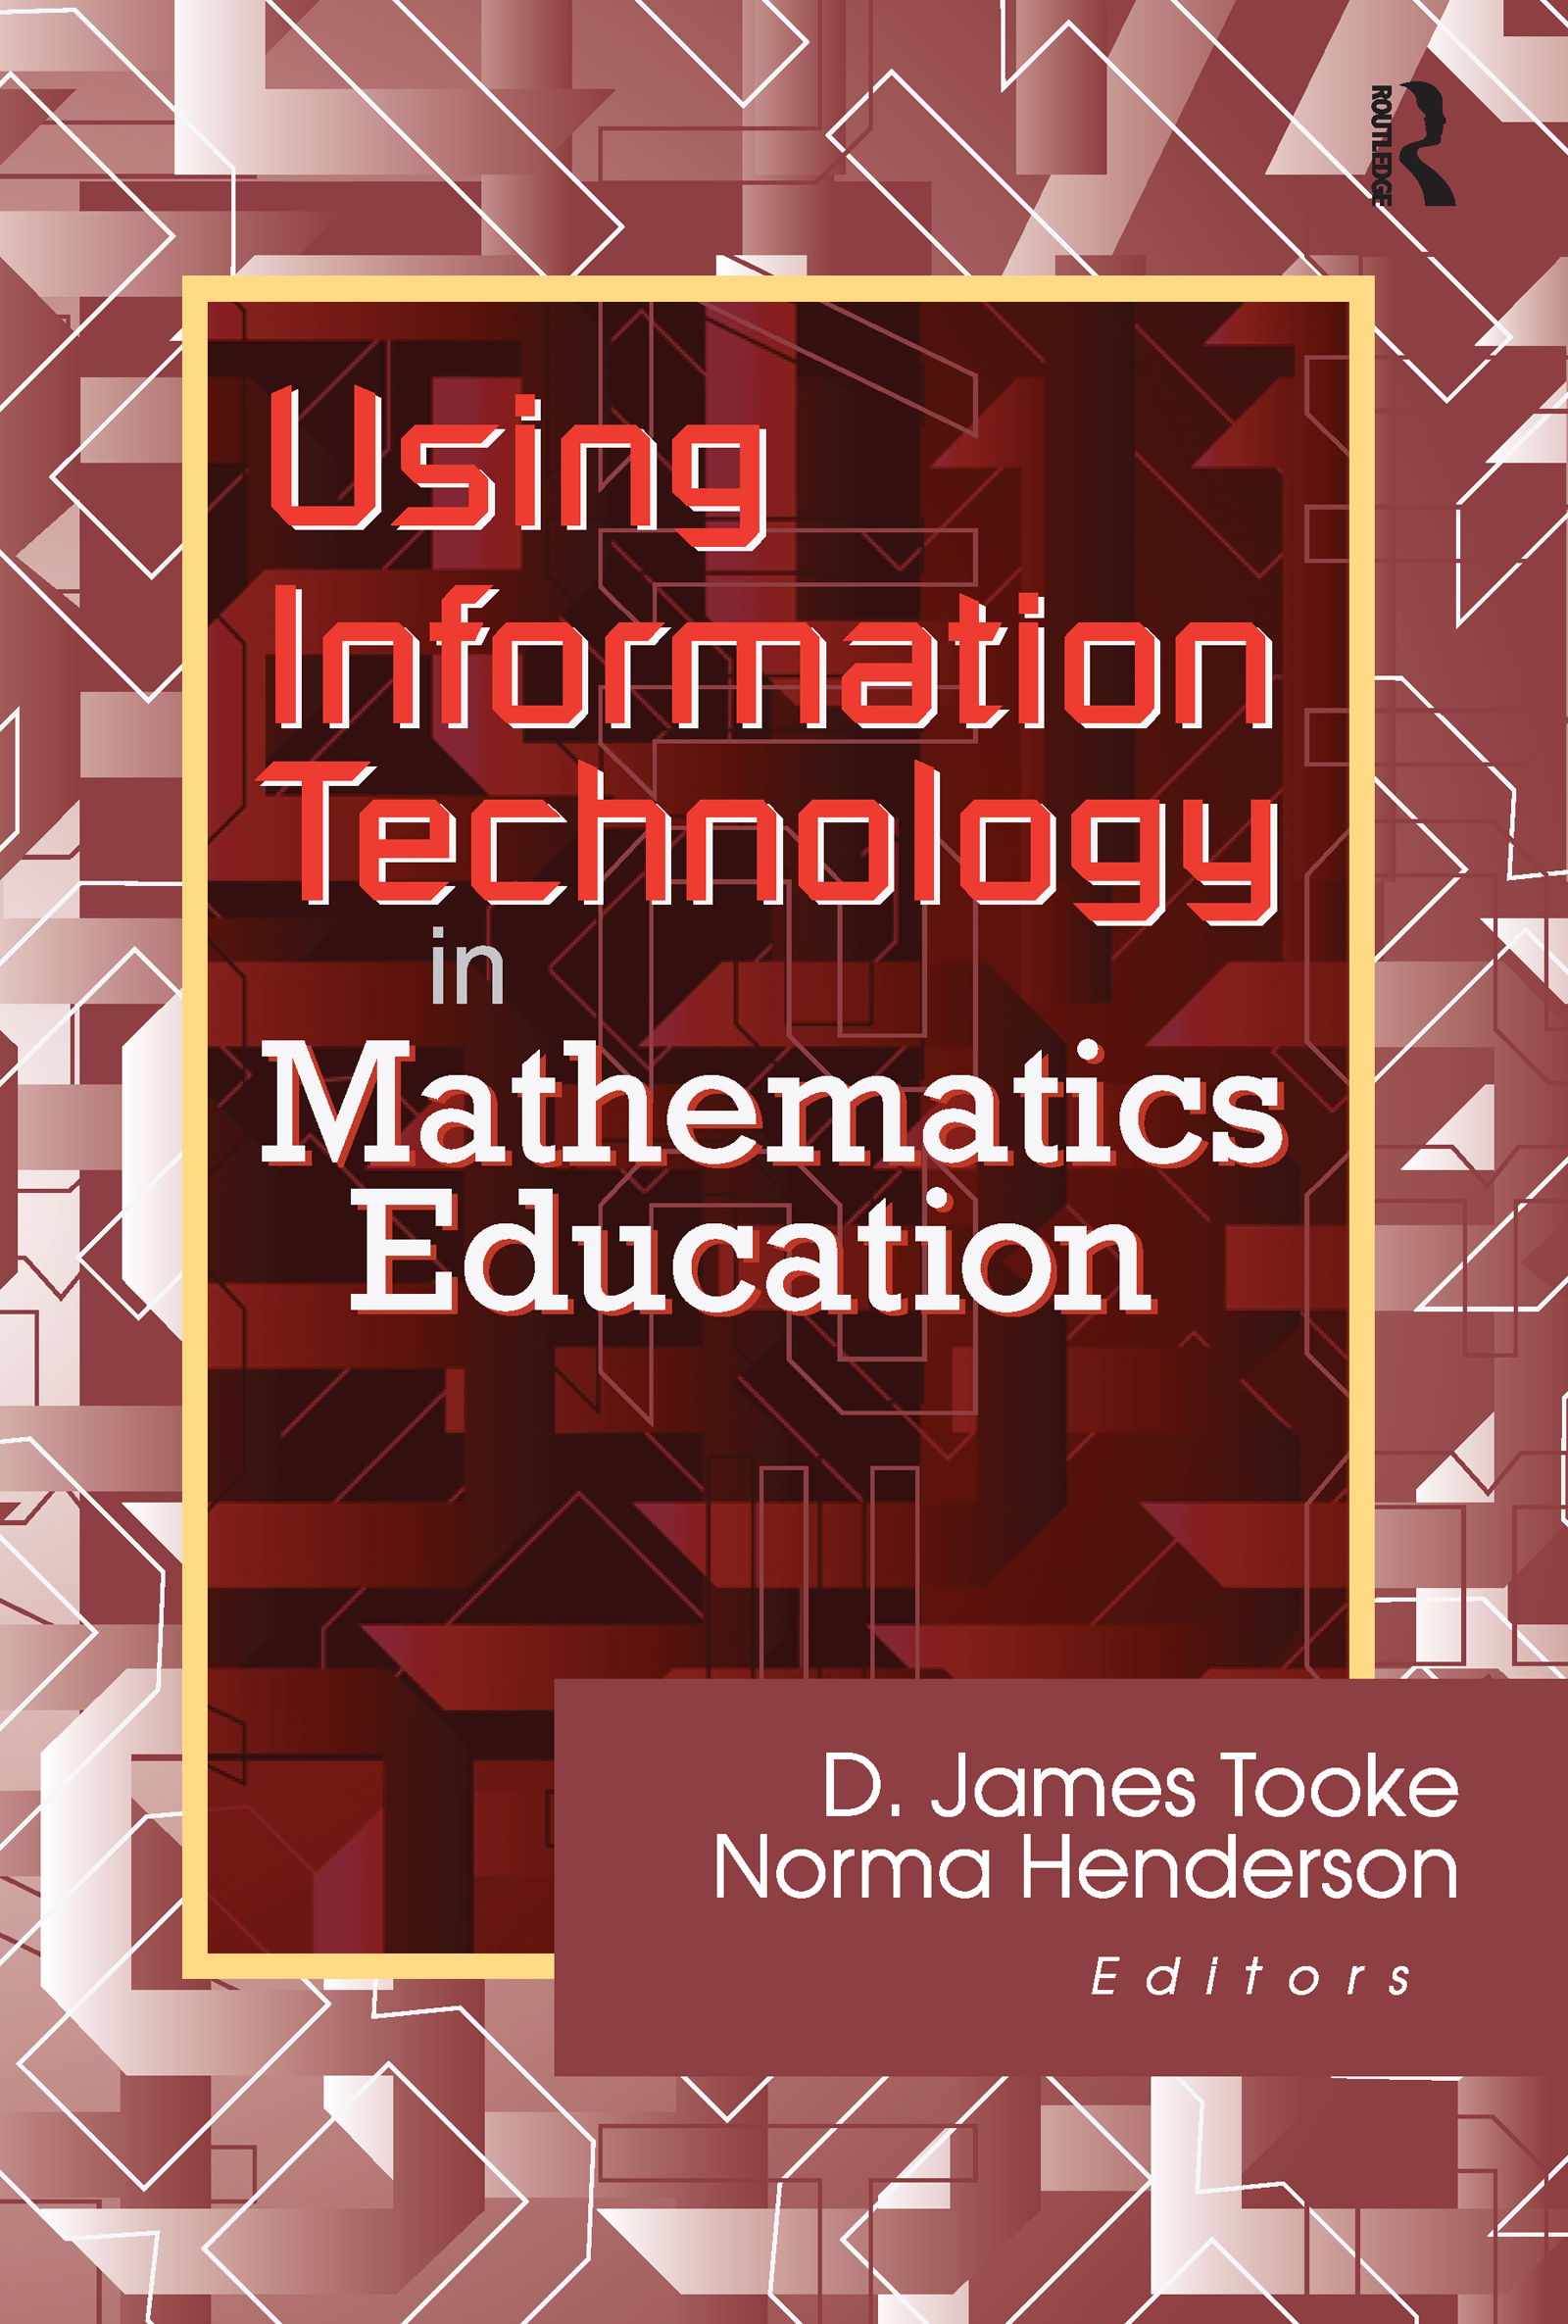 Using Information Technology in Mathematics Education: 1st Edition (Paperback) book cover